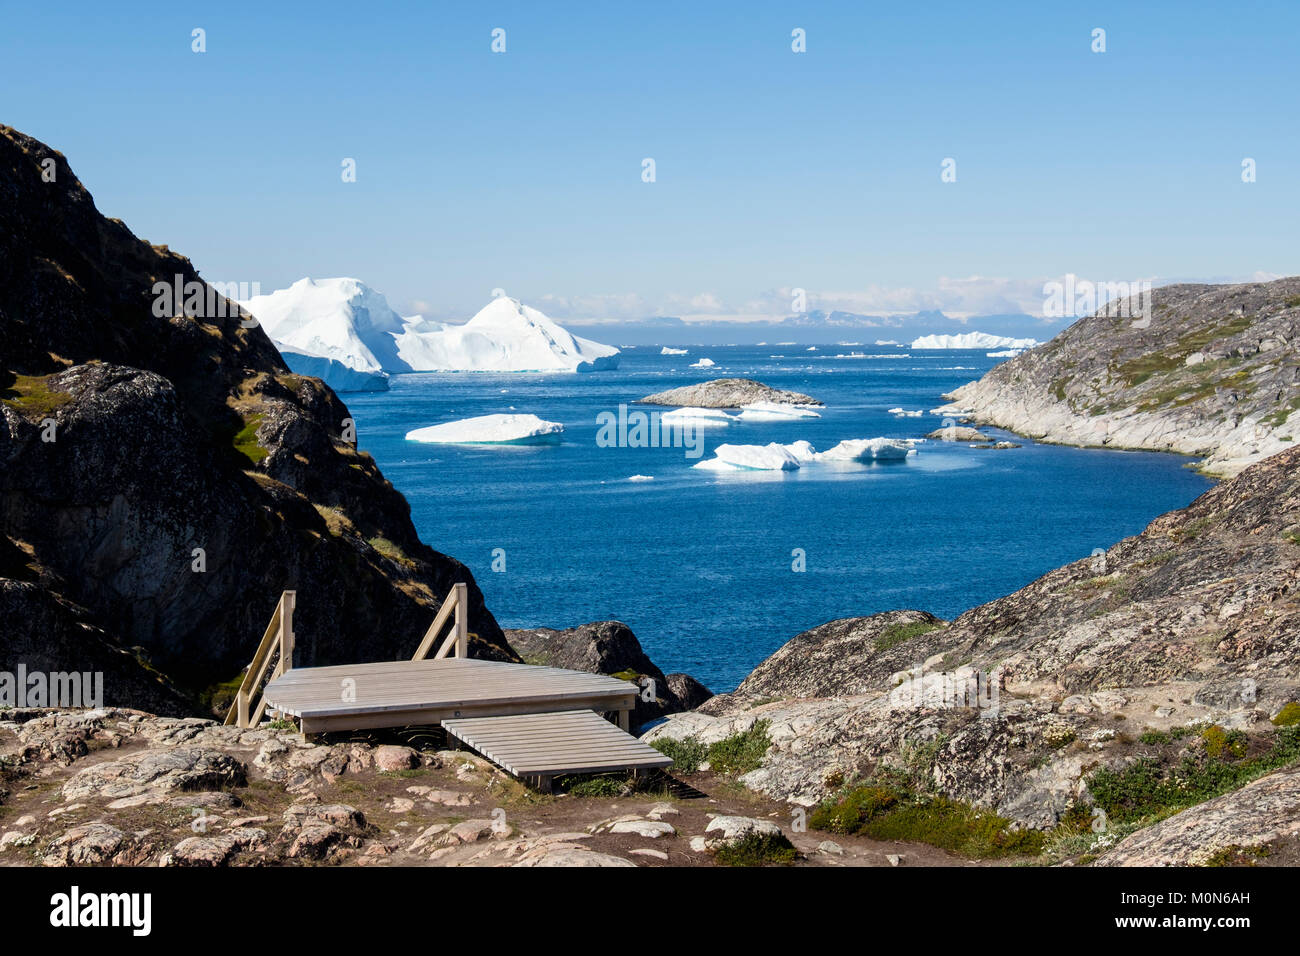 Steps down to boardwalk with icebergs from Ilulissat Icefjord drifting into Disko Bay. Nakkaavik viewpoint, Ilulissat - Stock Image